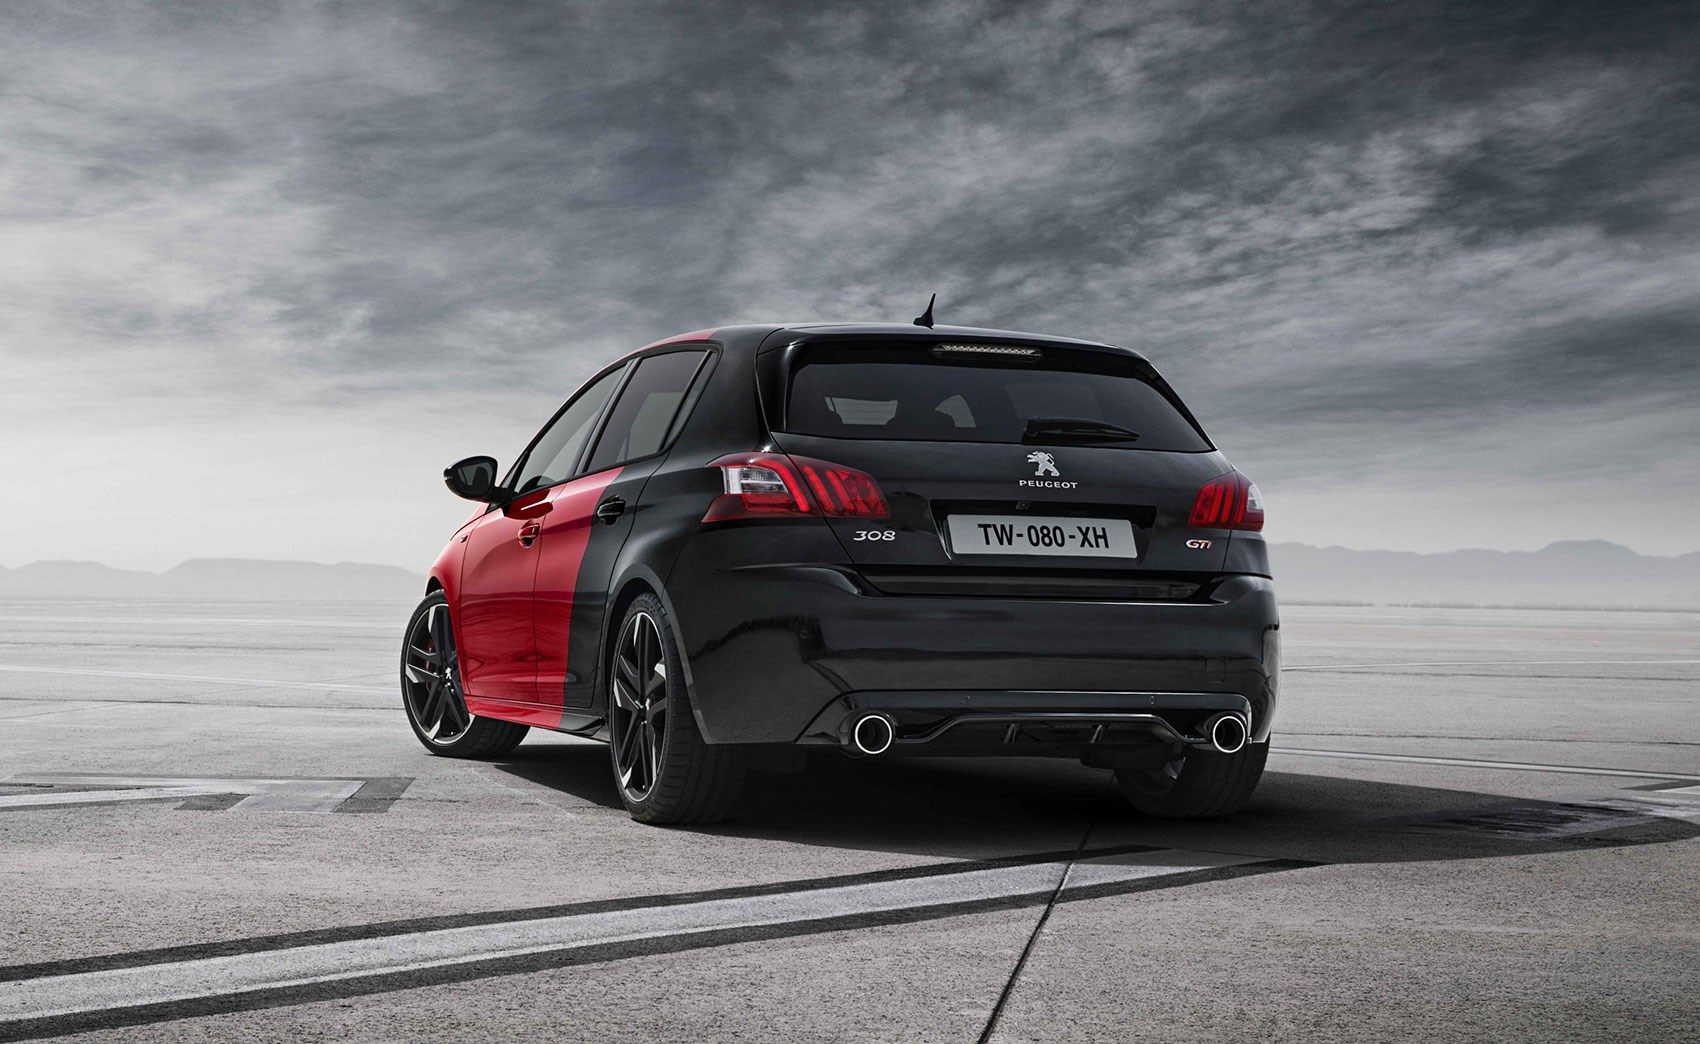 Peugeot 308 Gti 2015 The French Go Golf Bashing on old car jaguar